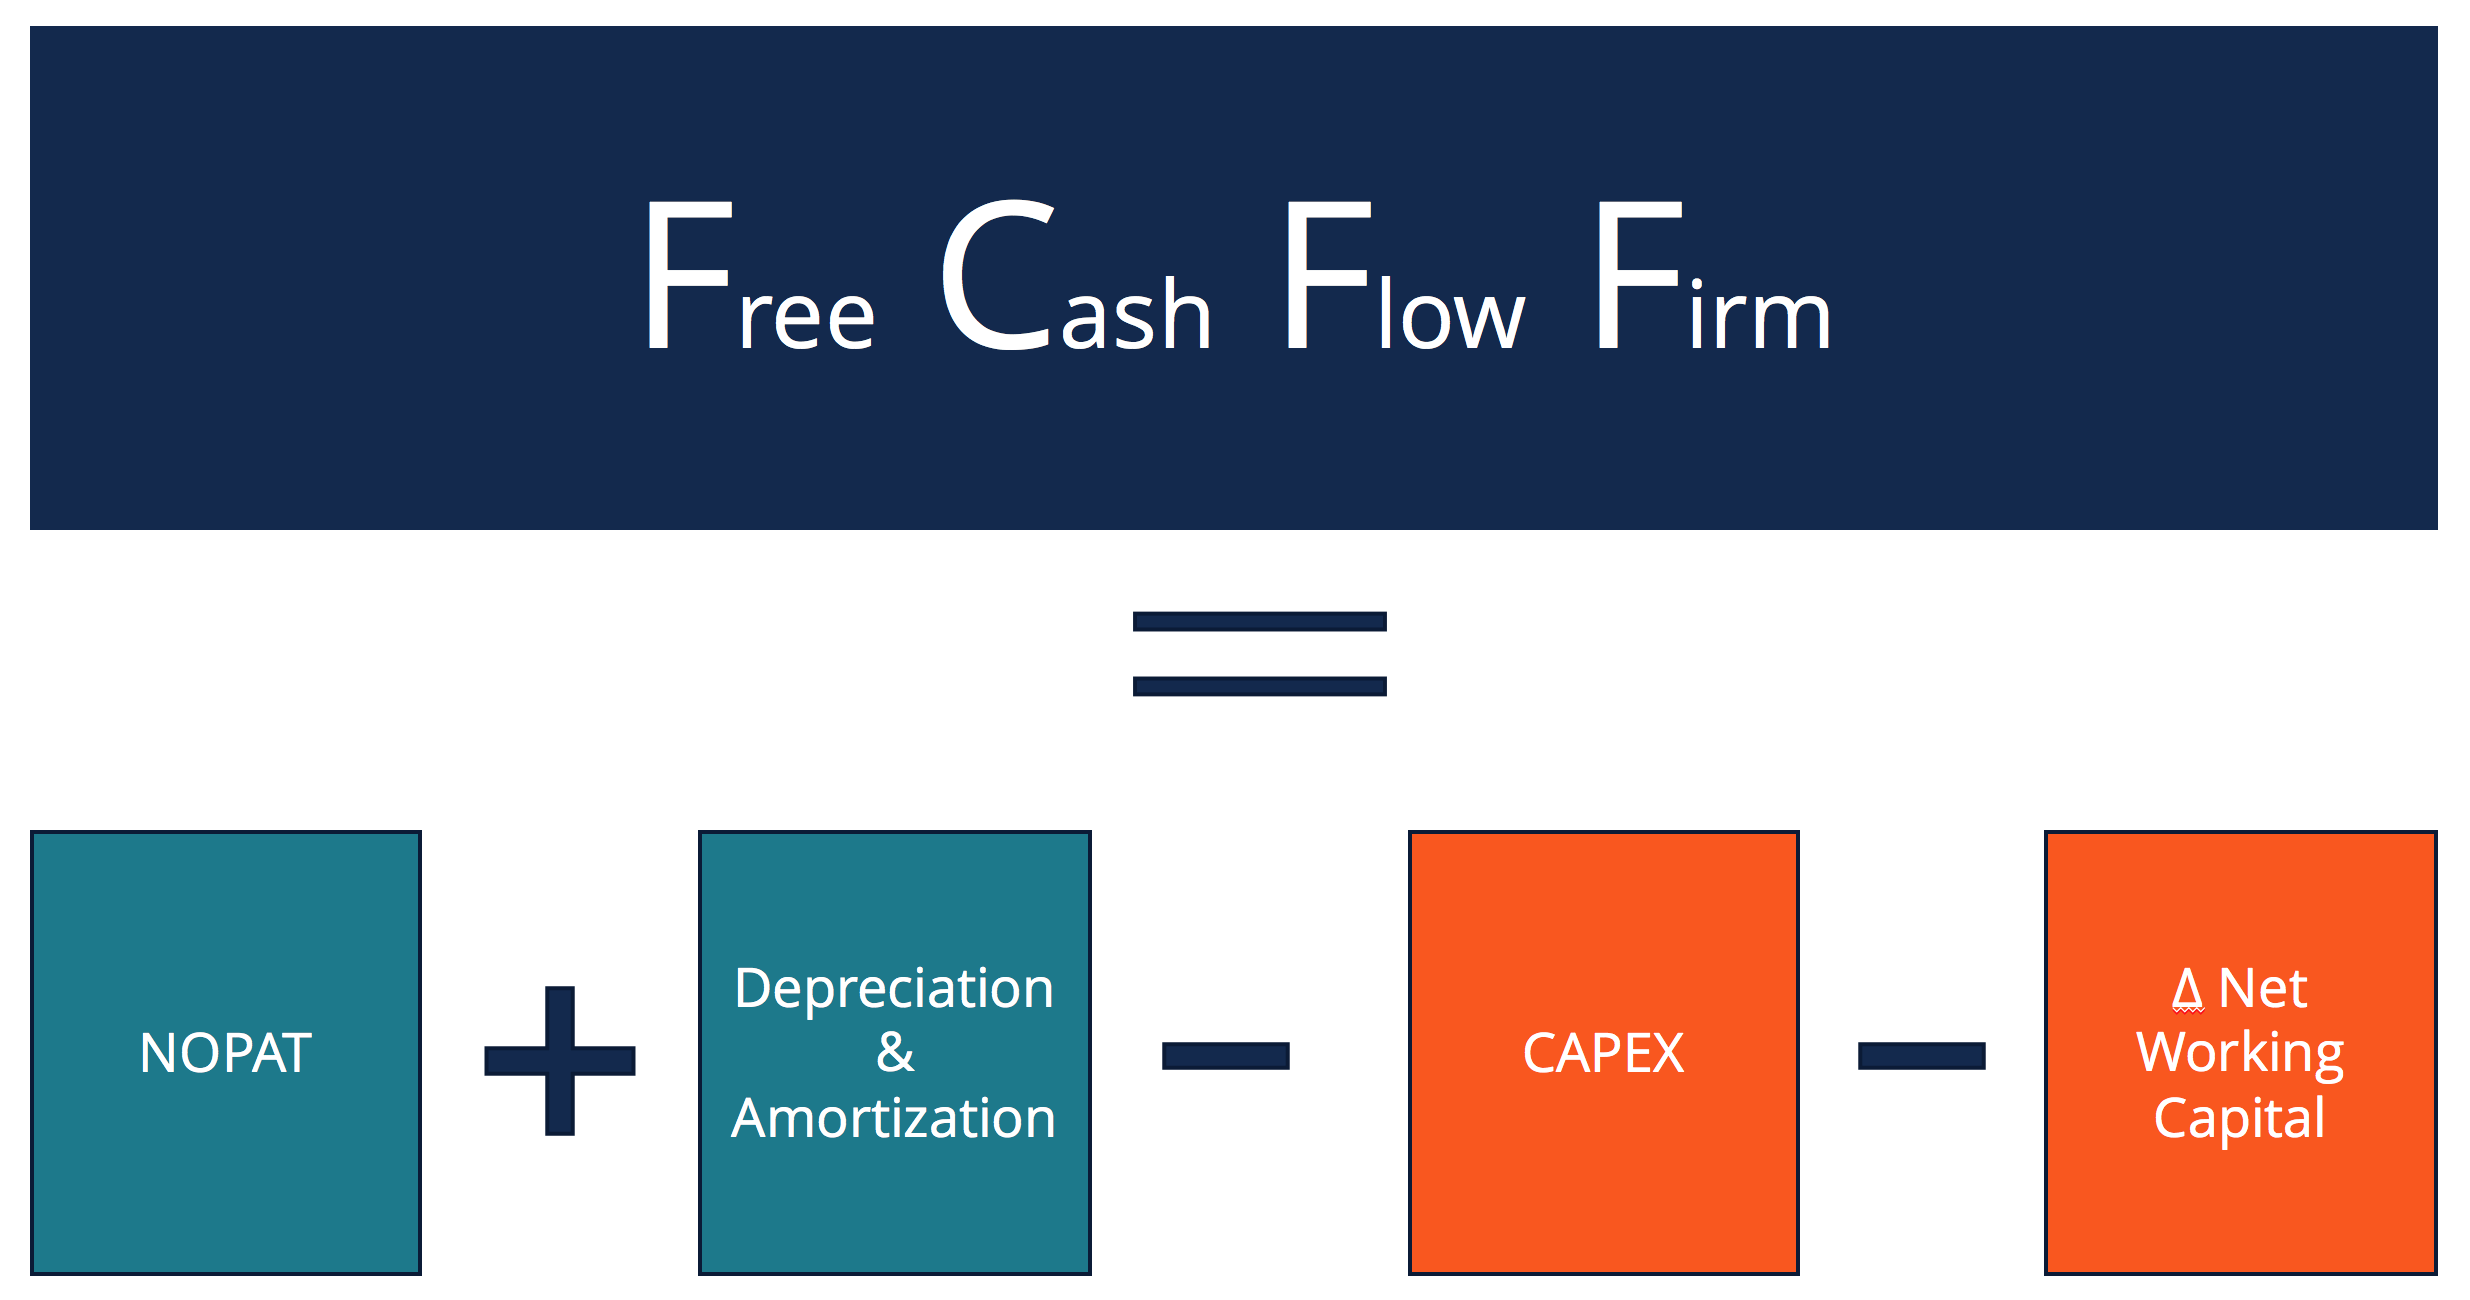 Free Cash Flow to Firm (FCFF) - Formulas, Definition & Example